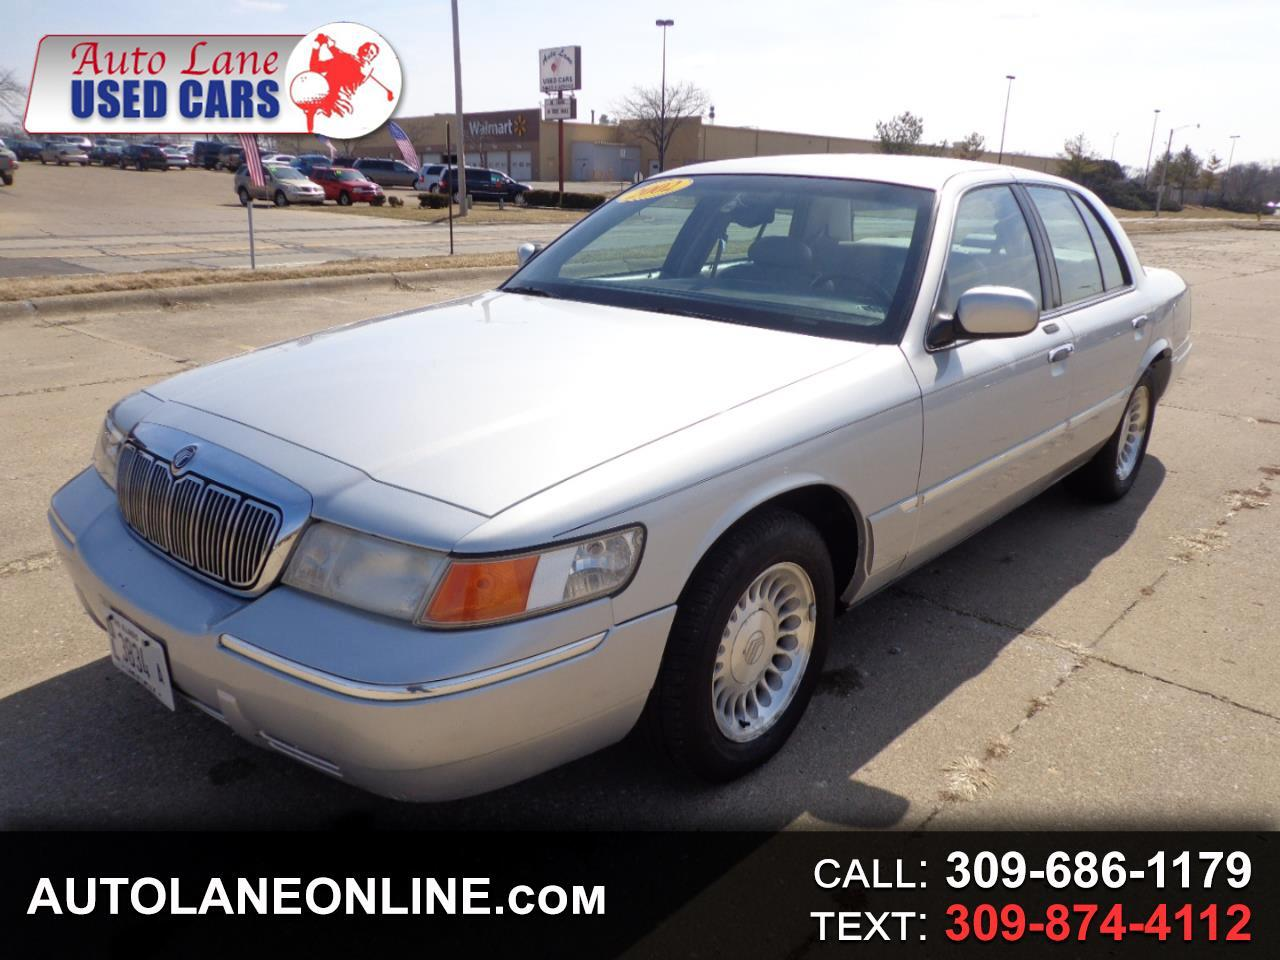 2002 Mercury Grand Marquis 4dr Sdn LS Ultimate